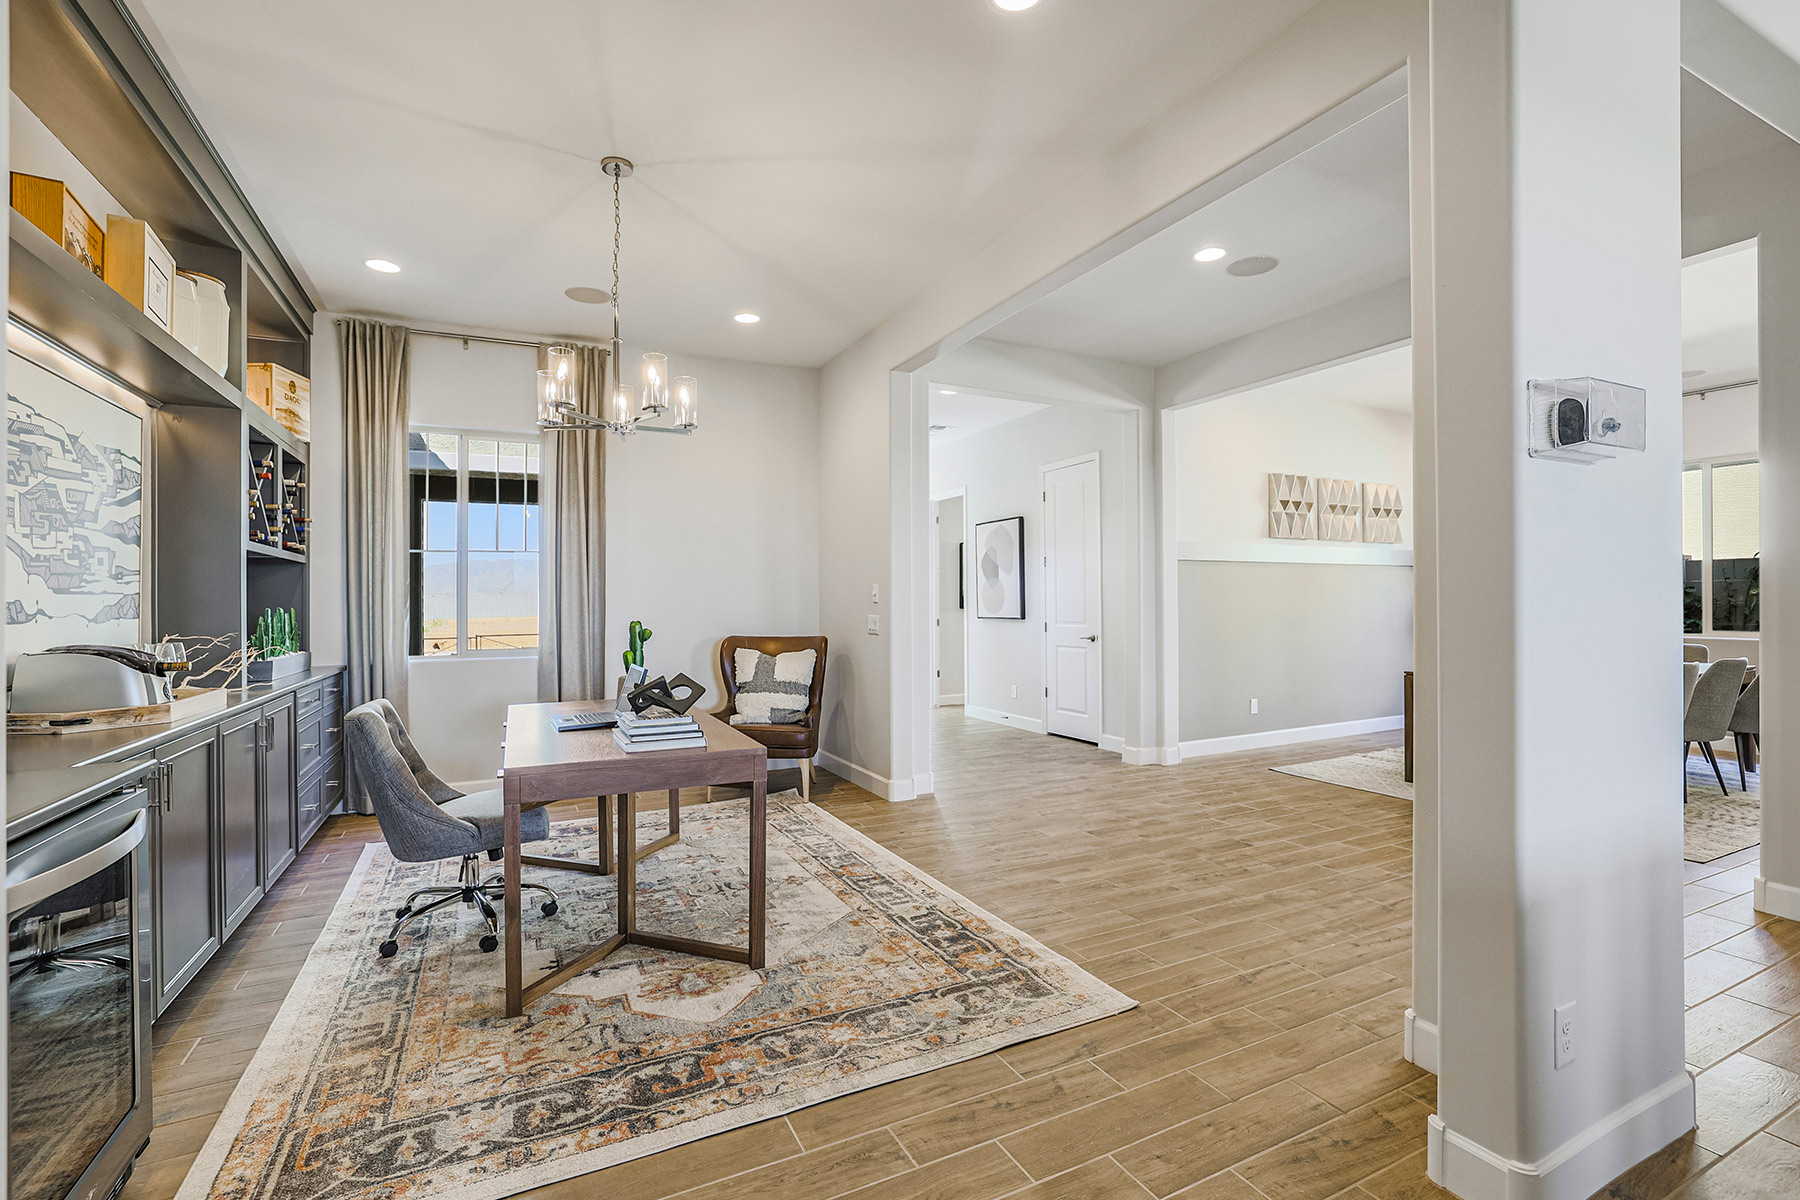 Castleton Plan Study Room at Azure Canyon in Litchfield Park Arizona by Mattamy Homes